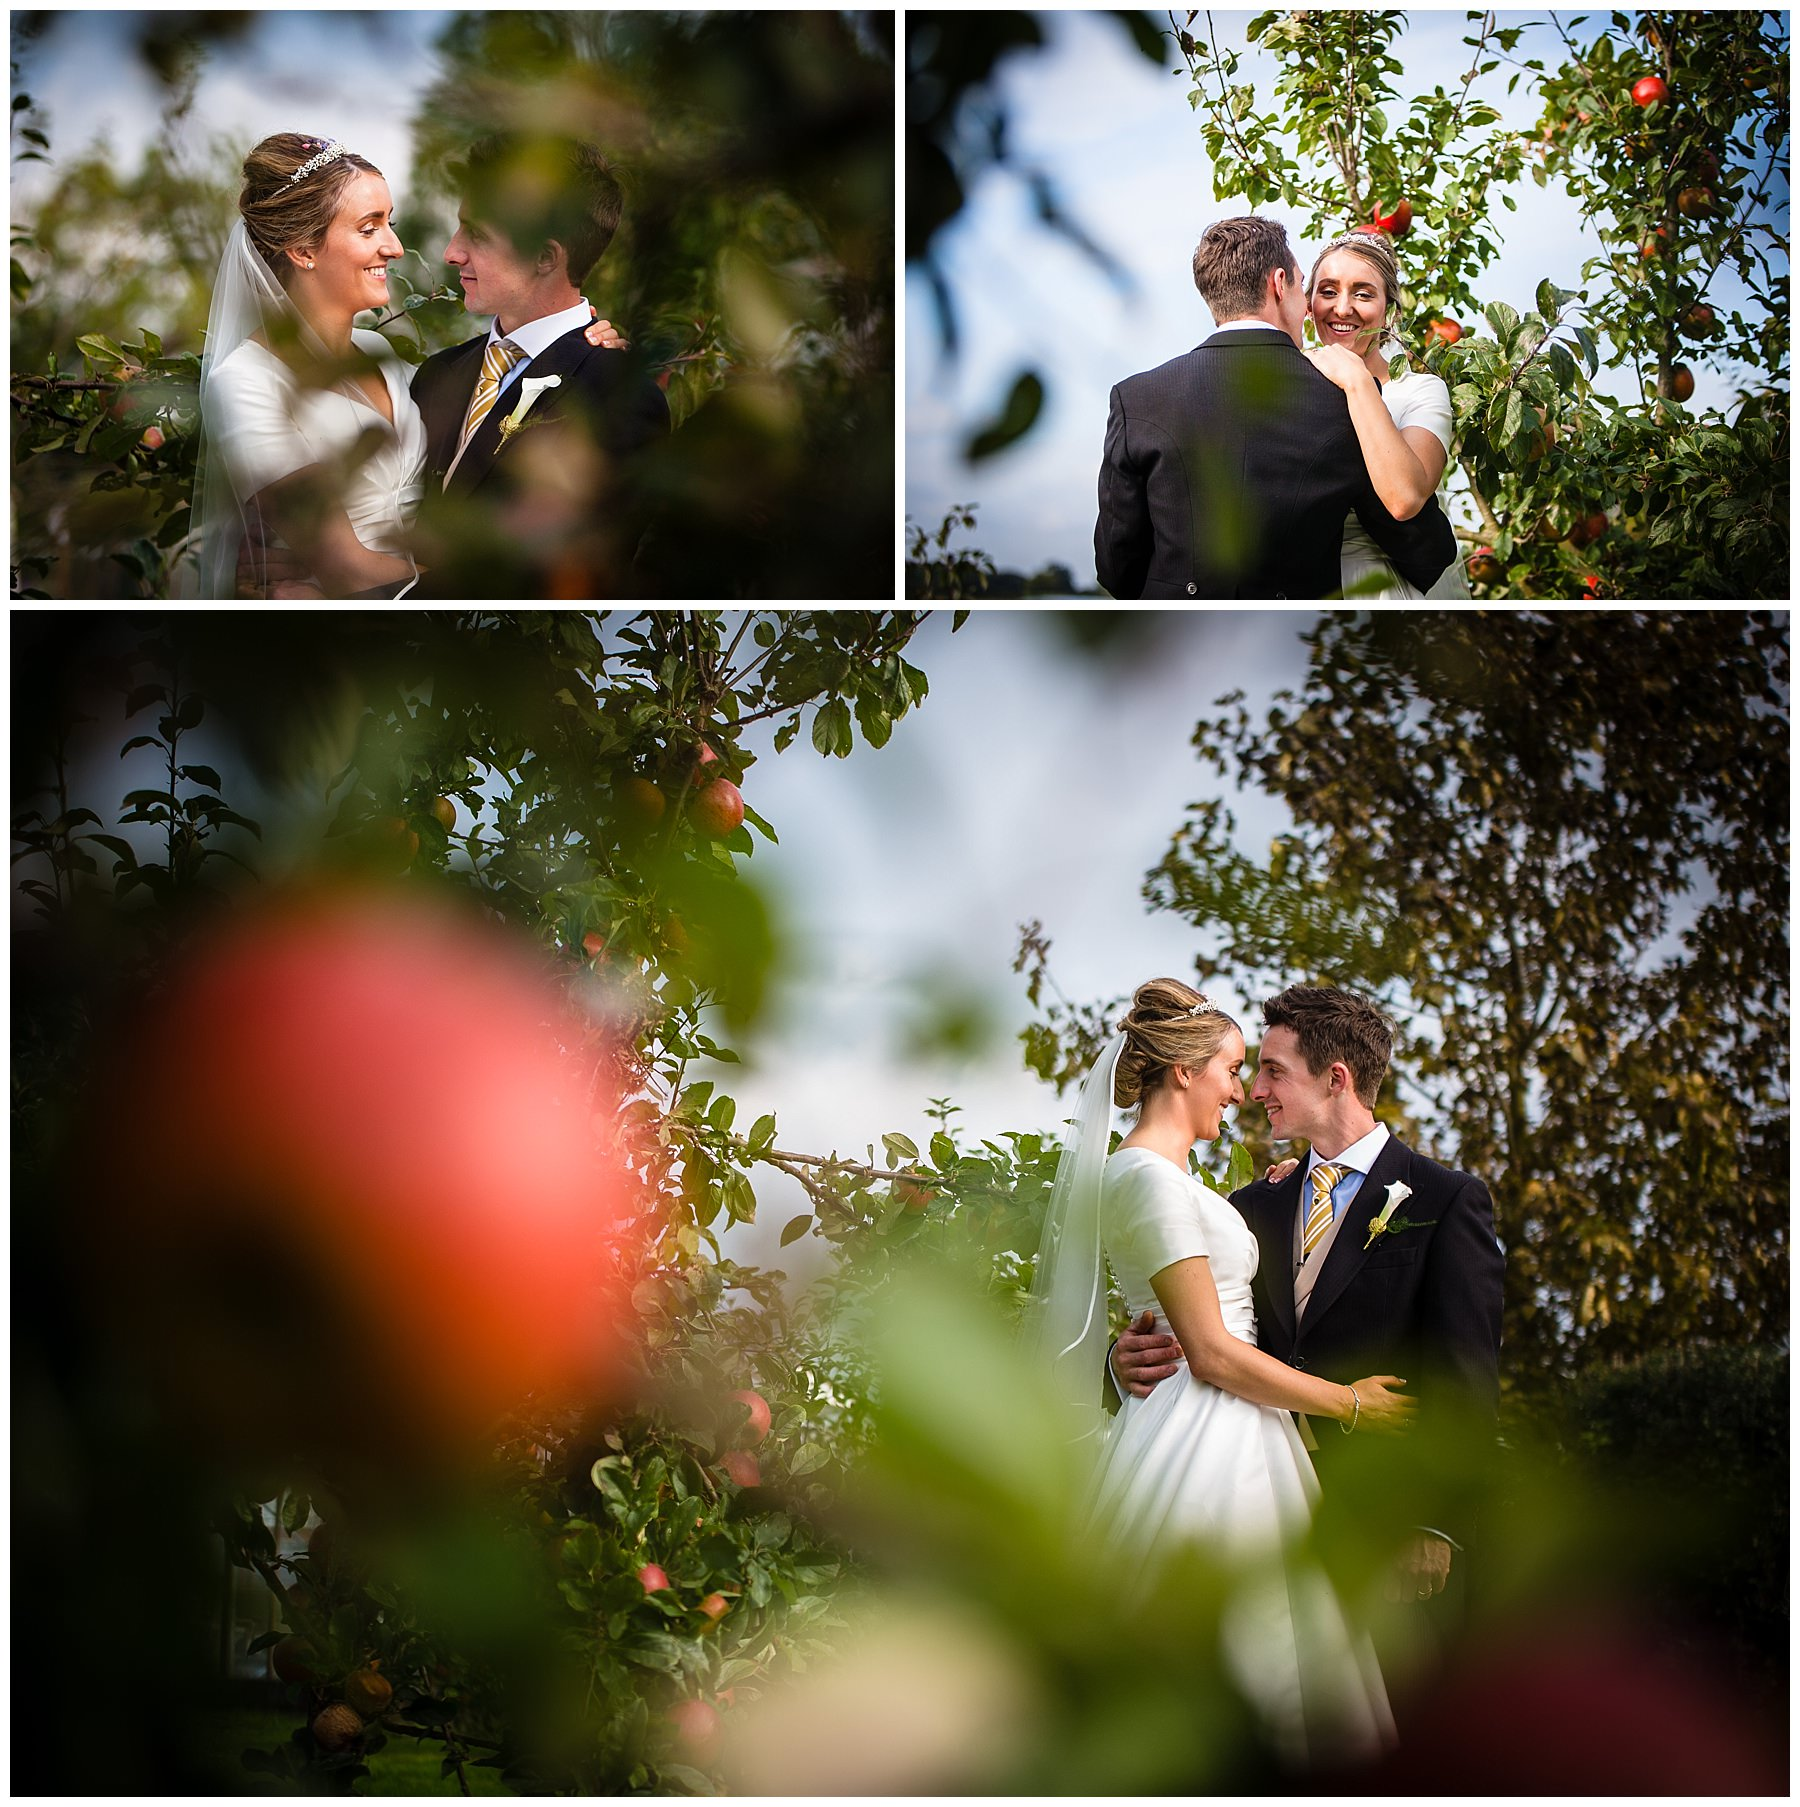 photos in the home orchard at shropshire marquee wedding reception - Autumnal Wedding Shropshire